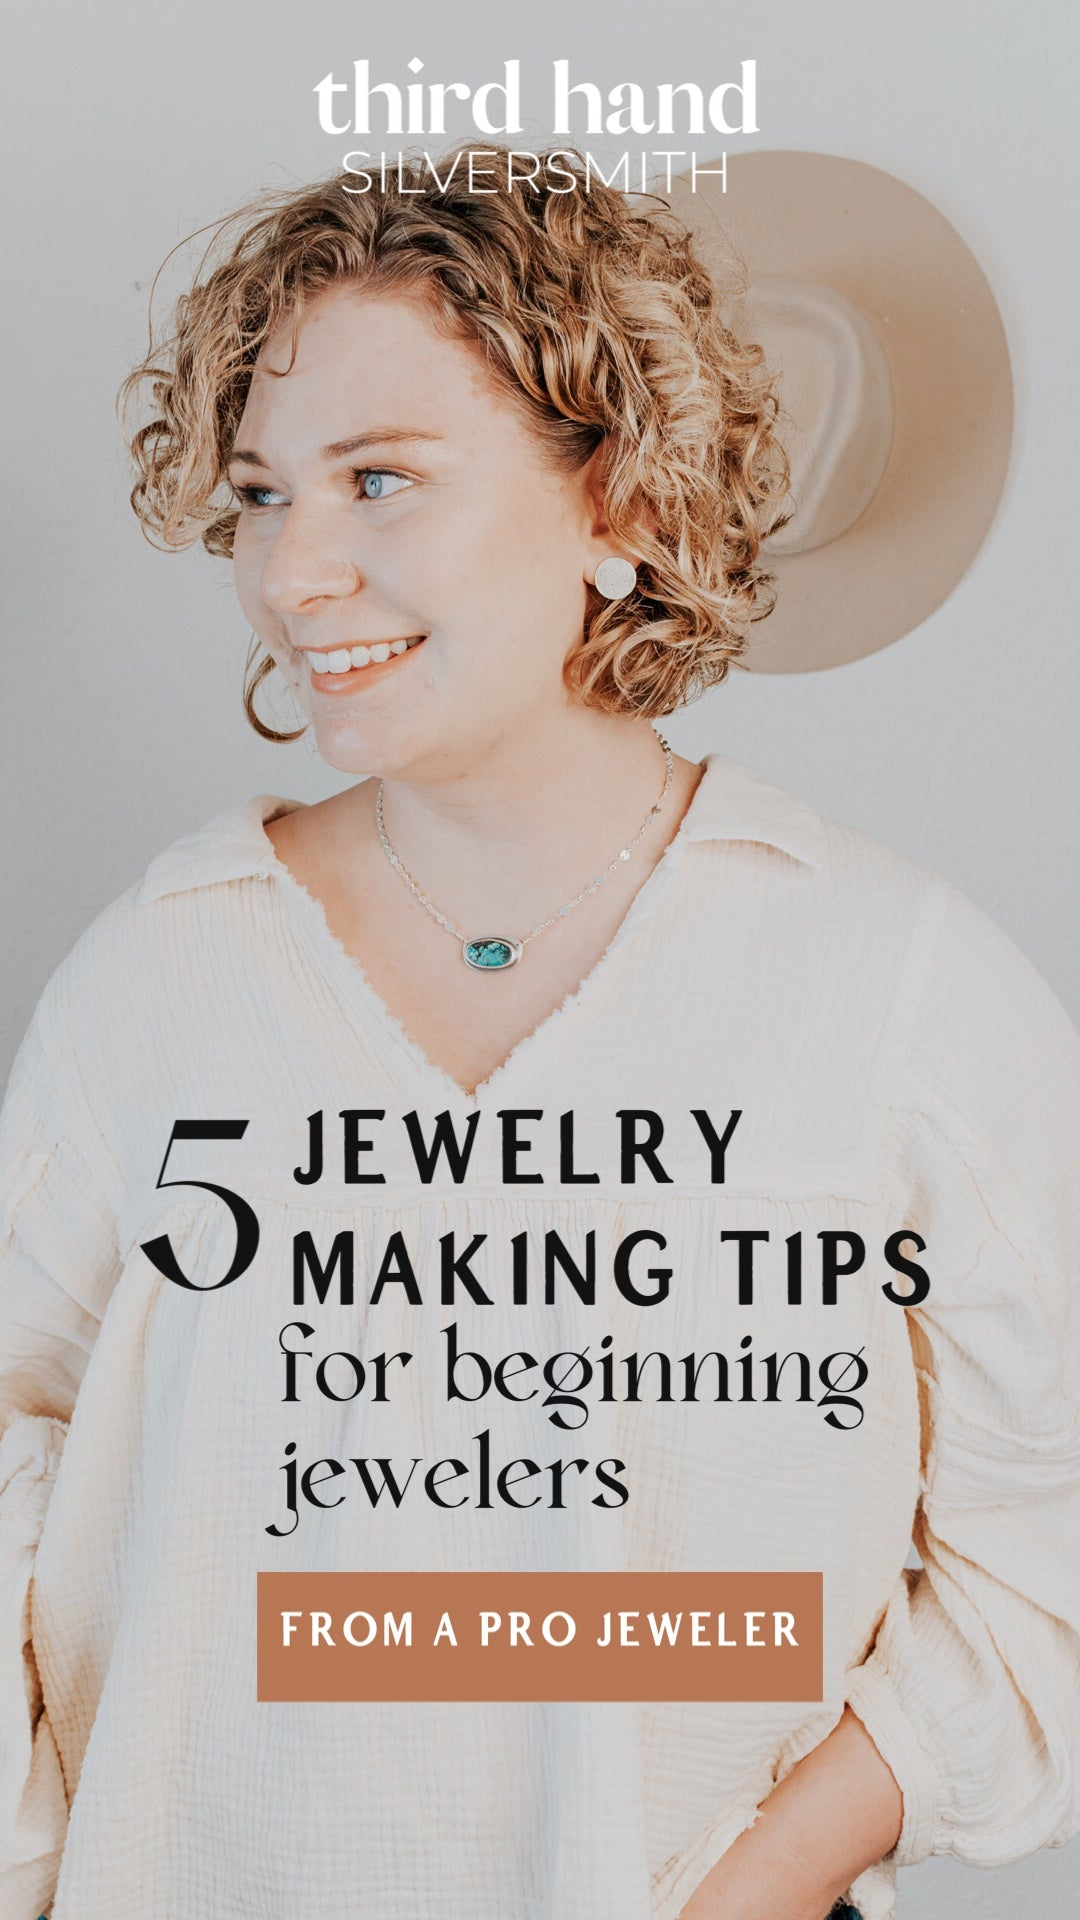 5 jewelry making tips for beginning jewelers from a pro jeweler